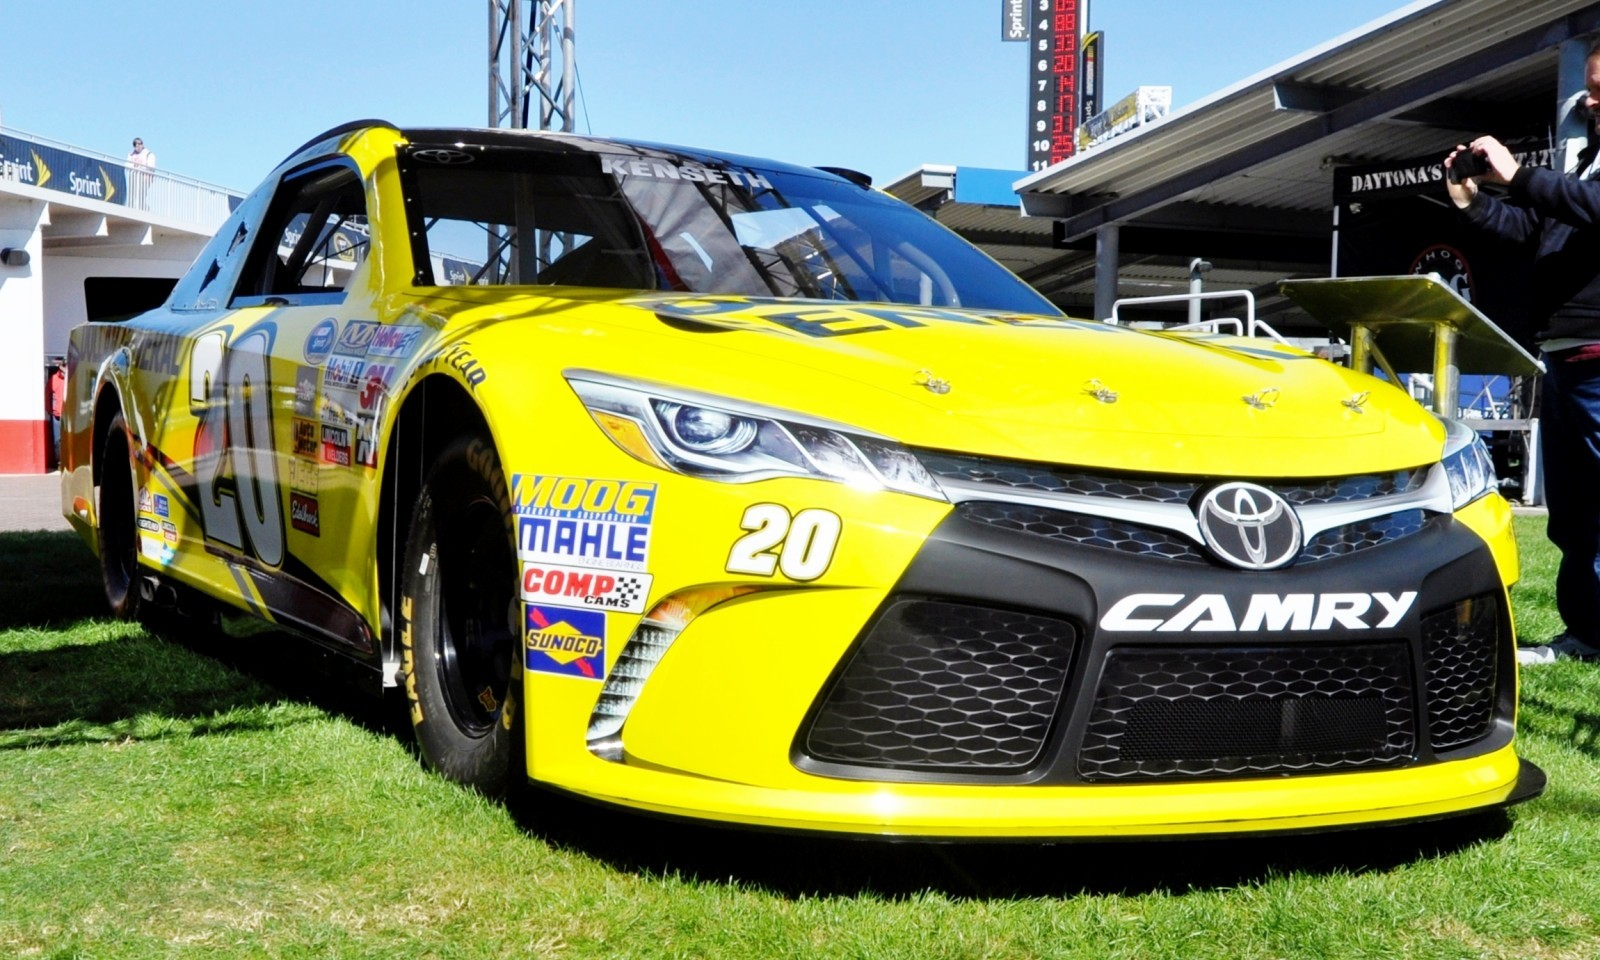 2015 Toyota Camry Nascar Of Matt Kenseth 20 Dollar General